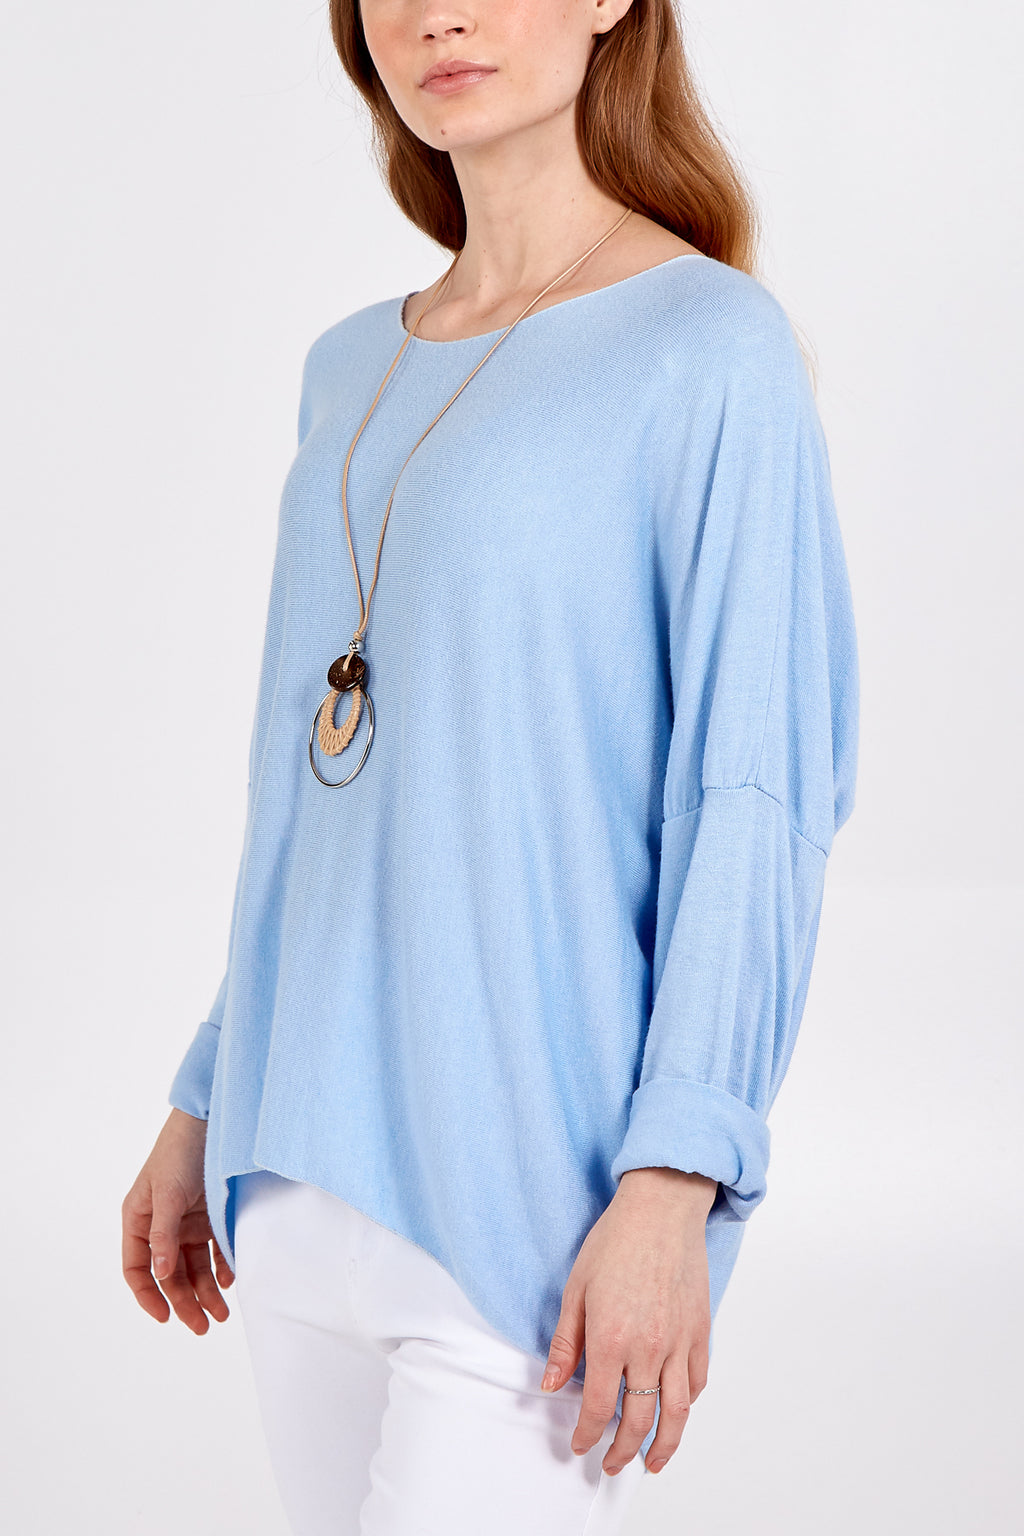 Soft Knit Fine Gauge Long Sleeve Jumper With Necklace